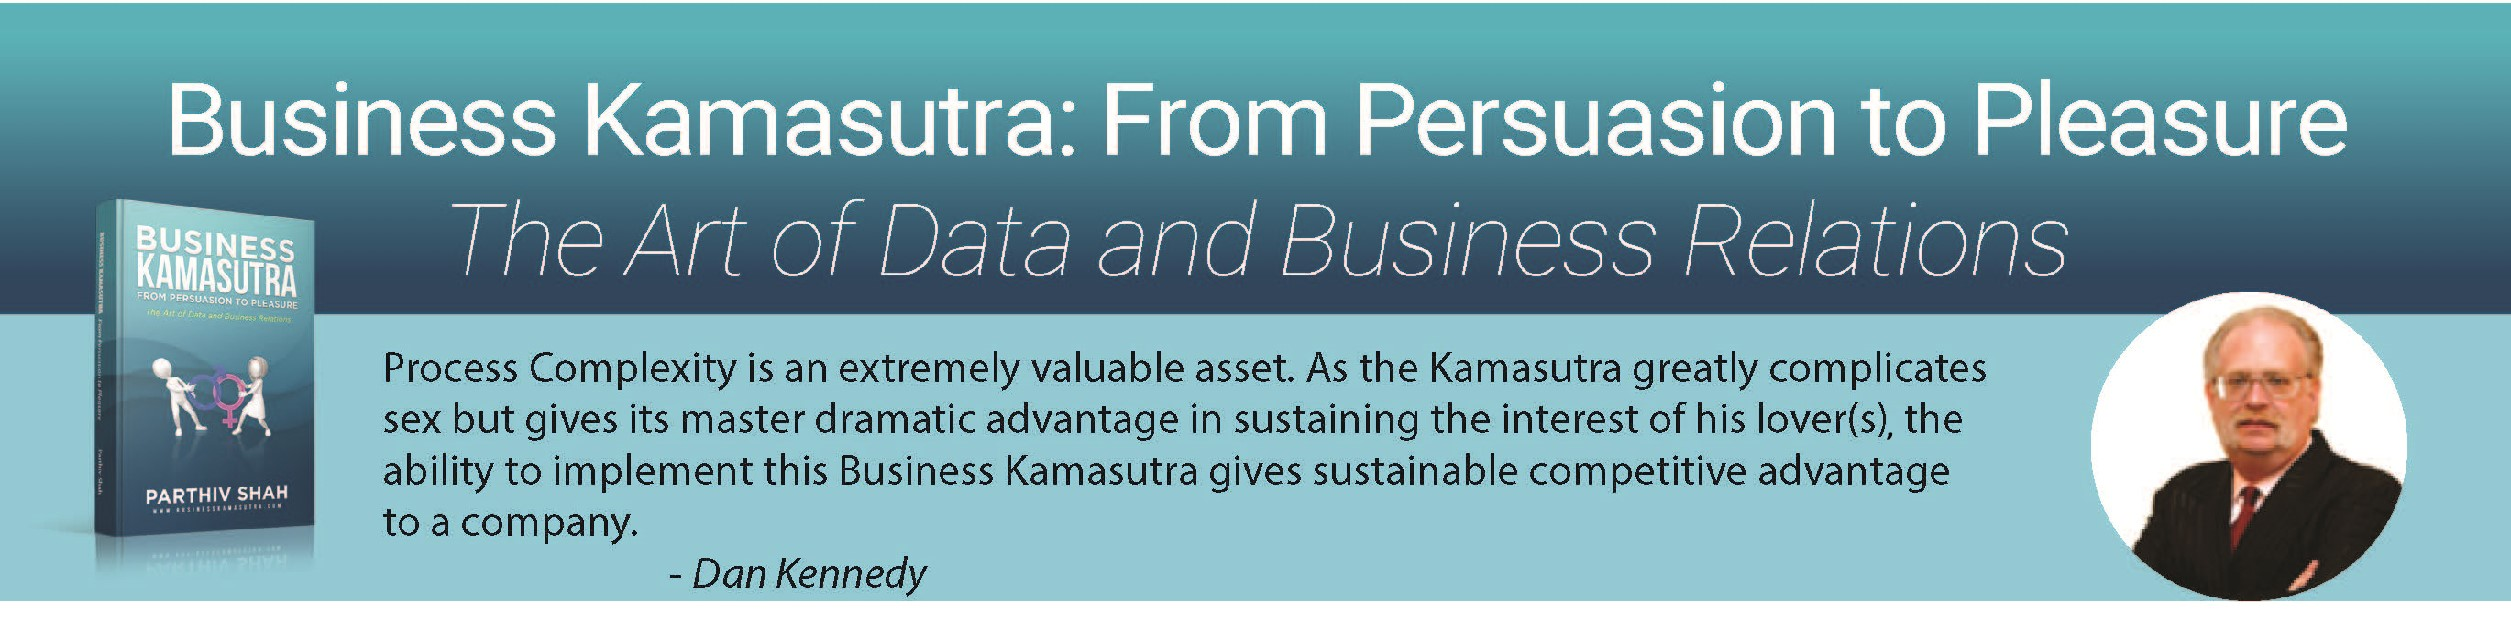 business kamasutra header